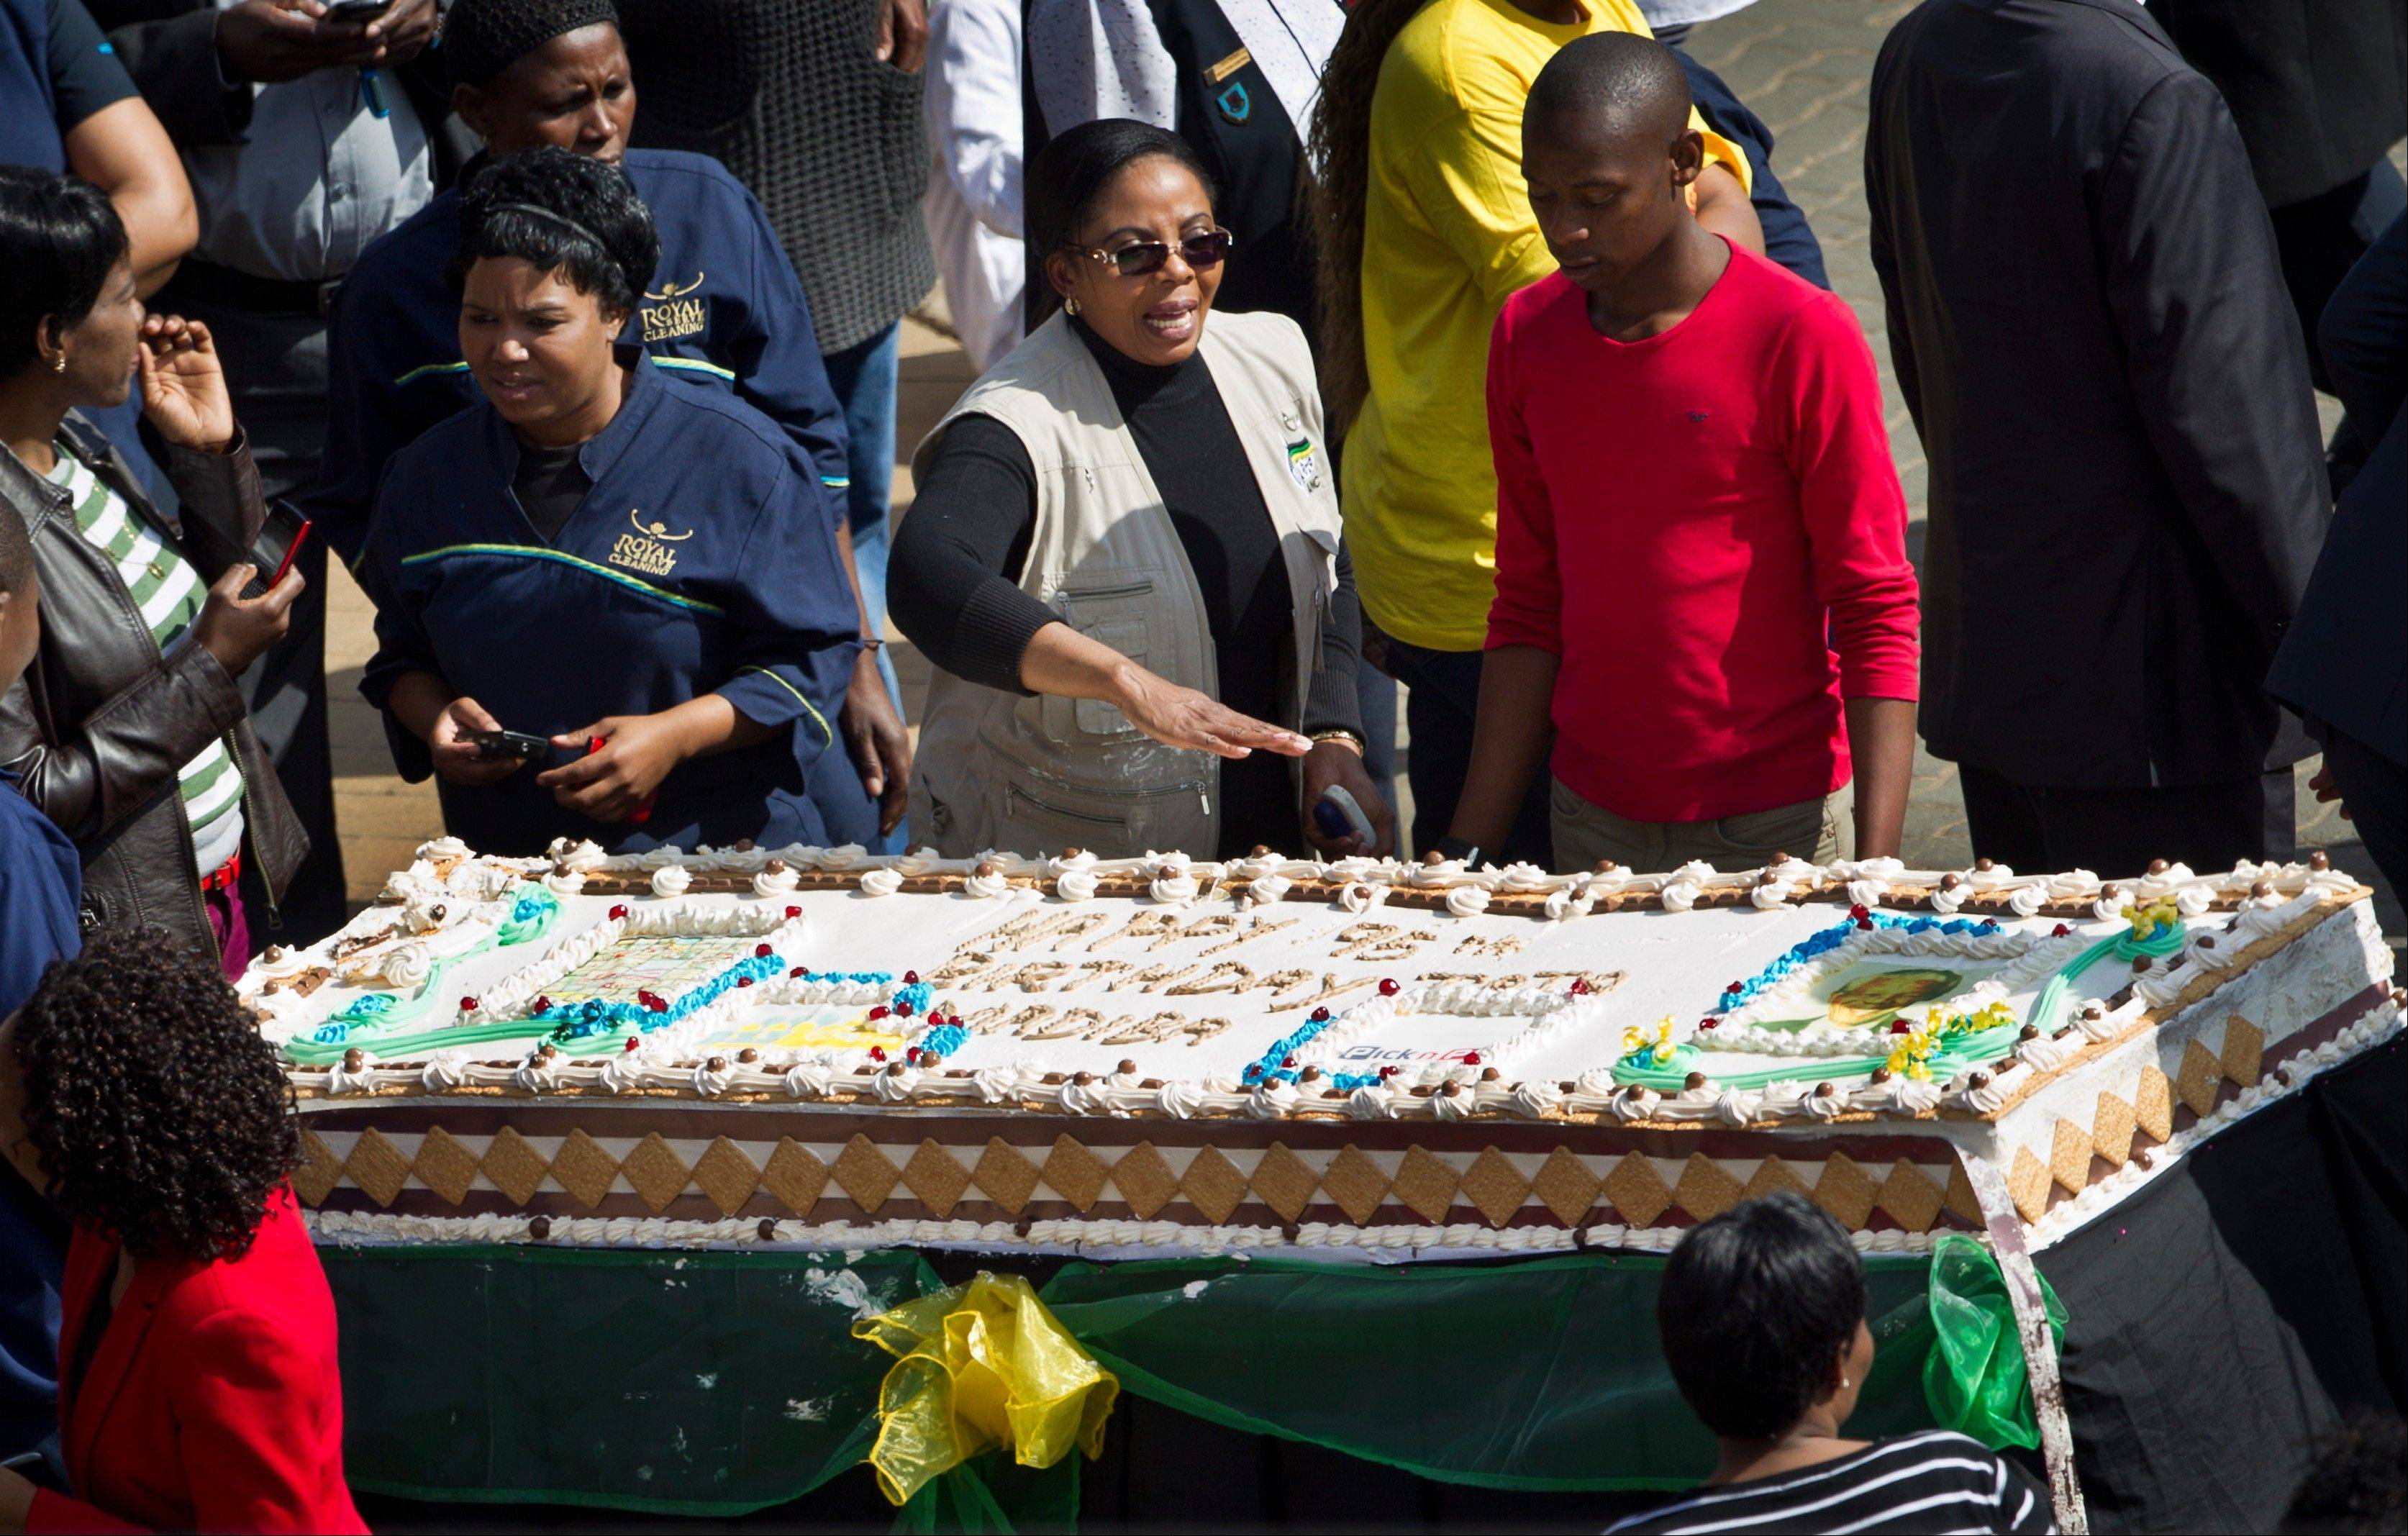 Unidentified guests and hospital workers prepare to cut a large birthday cake for Nelson Mandela inside the gates of the Mediclinic Heart Hospital where former South African President Nelson Mandela is being treated. South Africa celebrated Nelson Mandela�s 95th birthday on Thursday, a milestone capped by news that the former president�s health was improving after fears that he was close to death during ongoing hospital treatment.